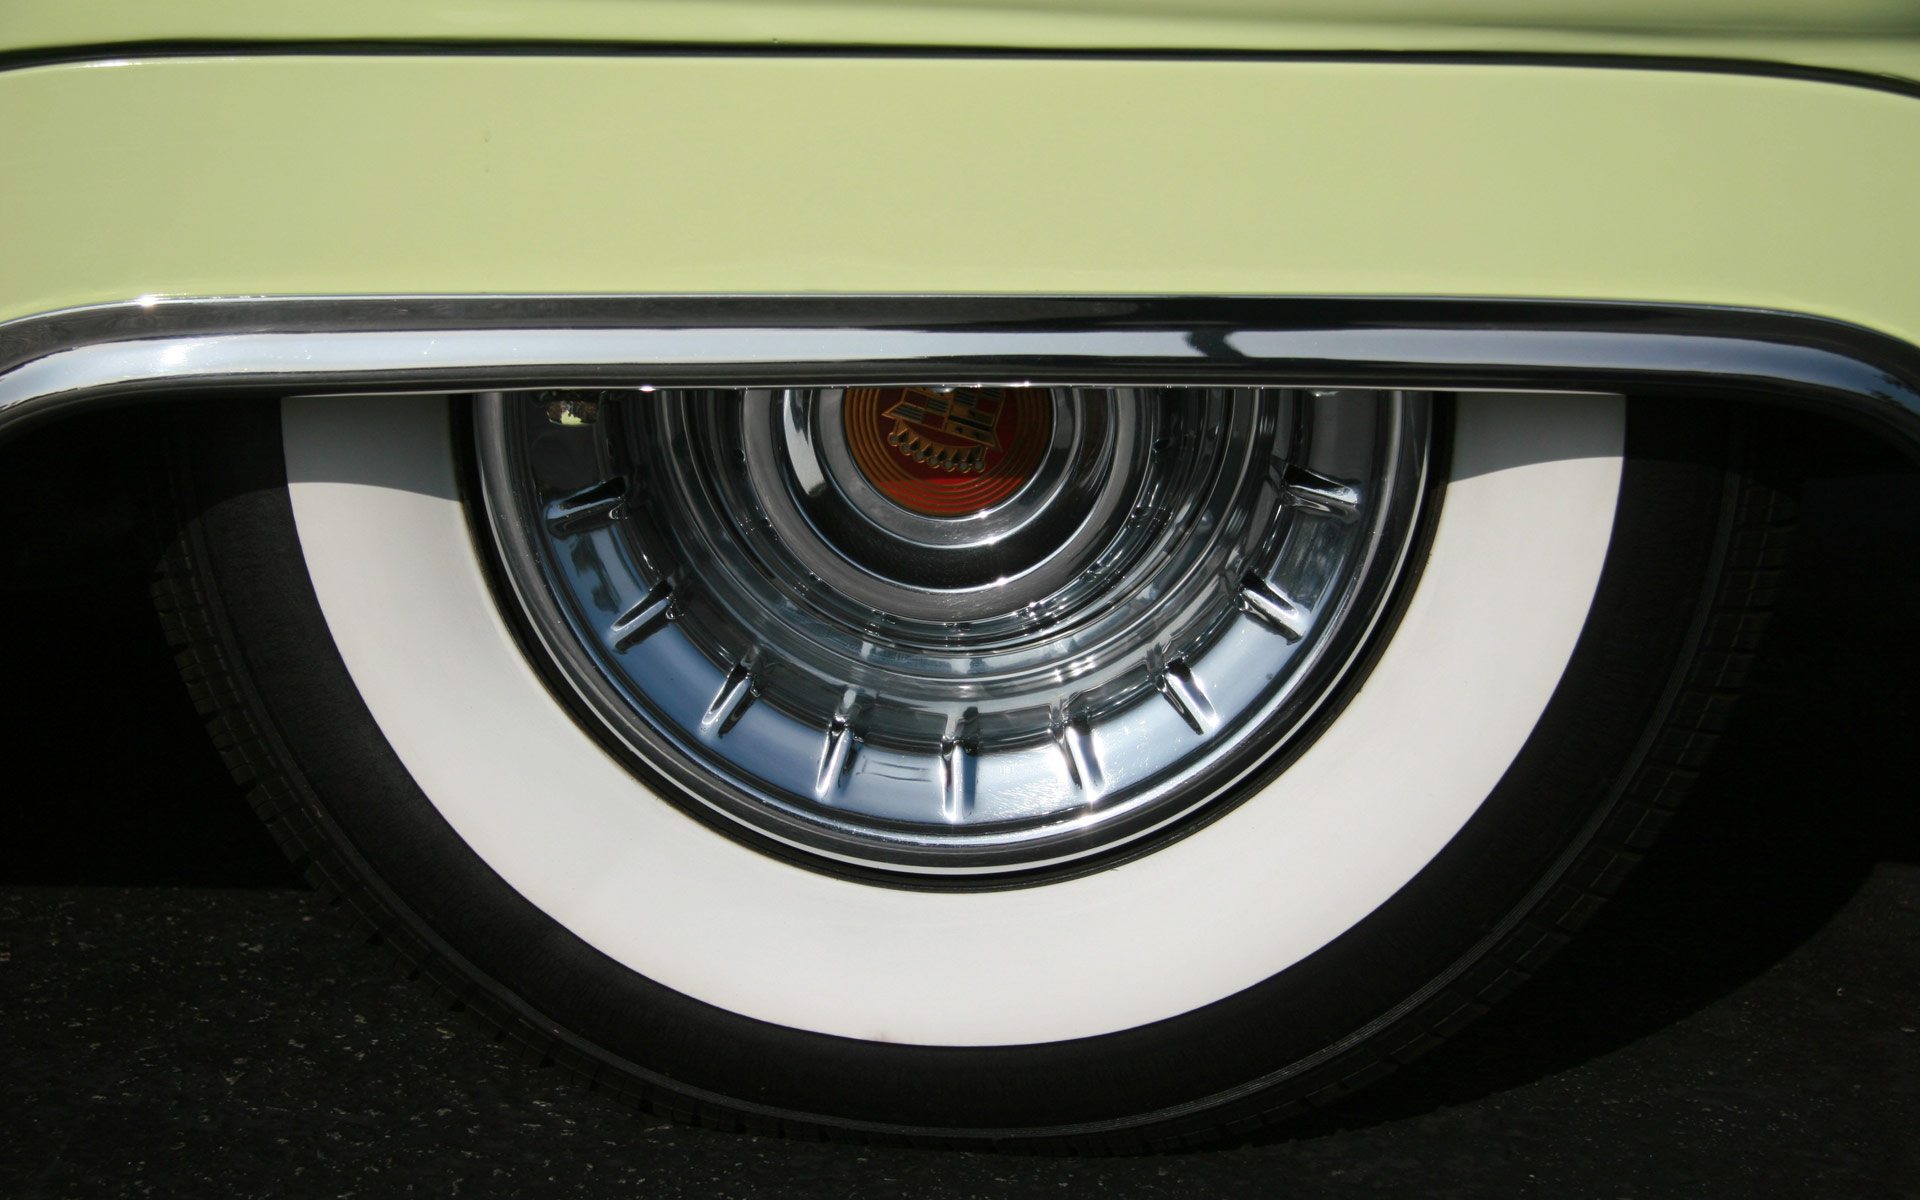 Standout Image - Retro car wheel